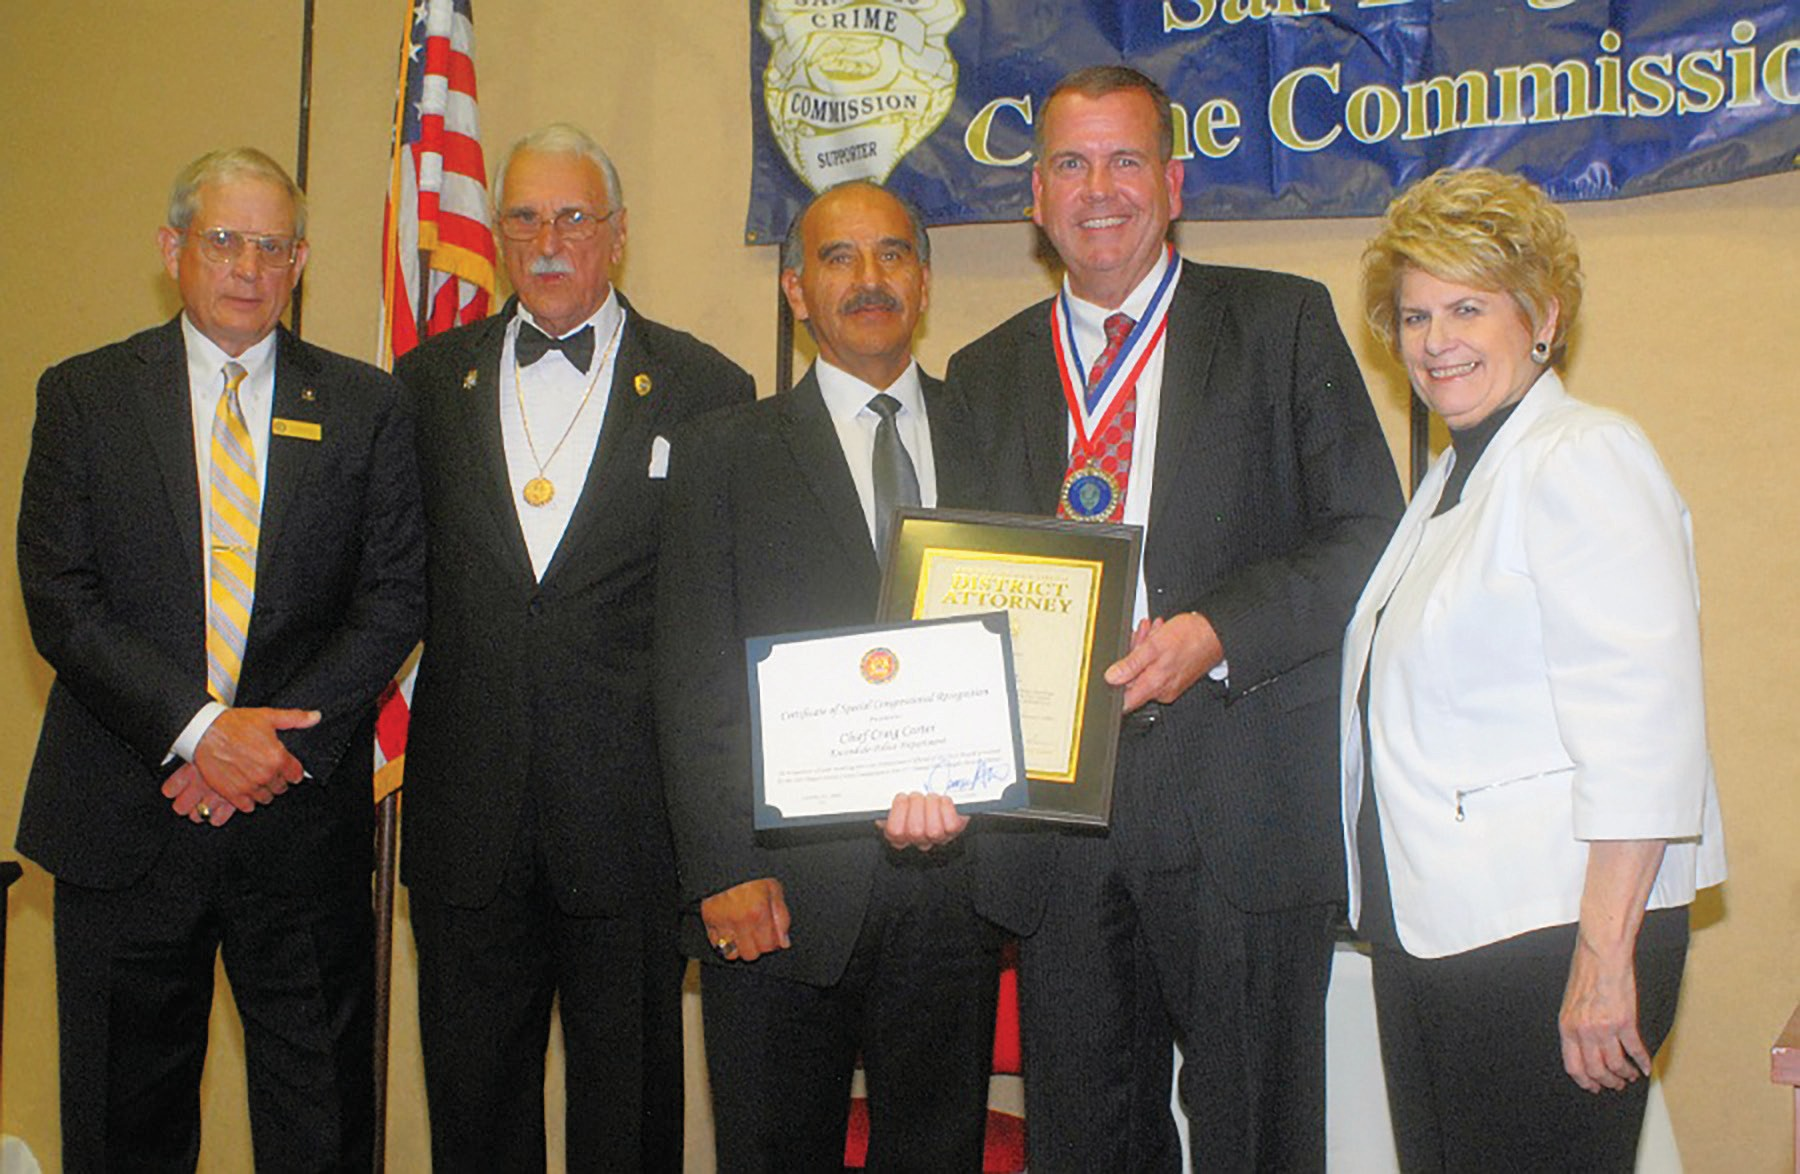 Chief Craig Cartner is shown receiving his recognition at the October 14 ceremony. Others, from left, include Wes Schermann, congressional Staffer for Duncan Hunter, Jim Hill, President of the San Diego County Crime Commission, Chula Vista Police Chief David Bejarano and District Attorney Bonnie Dumanis.